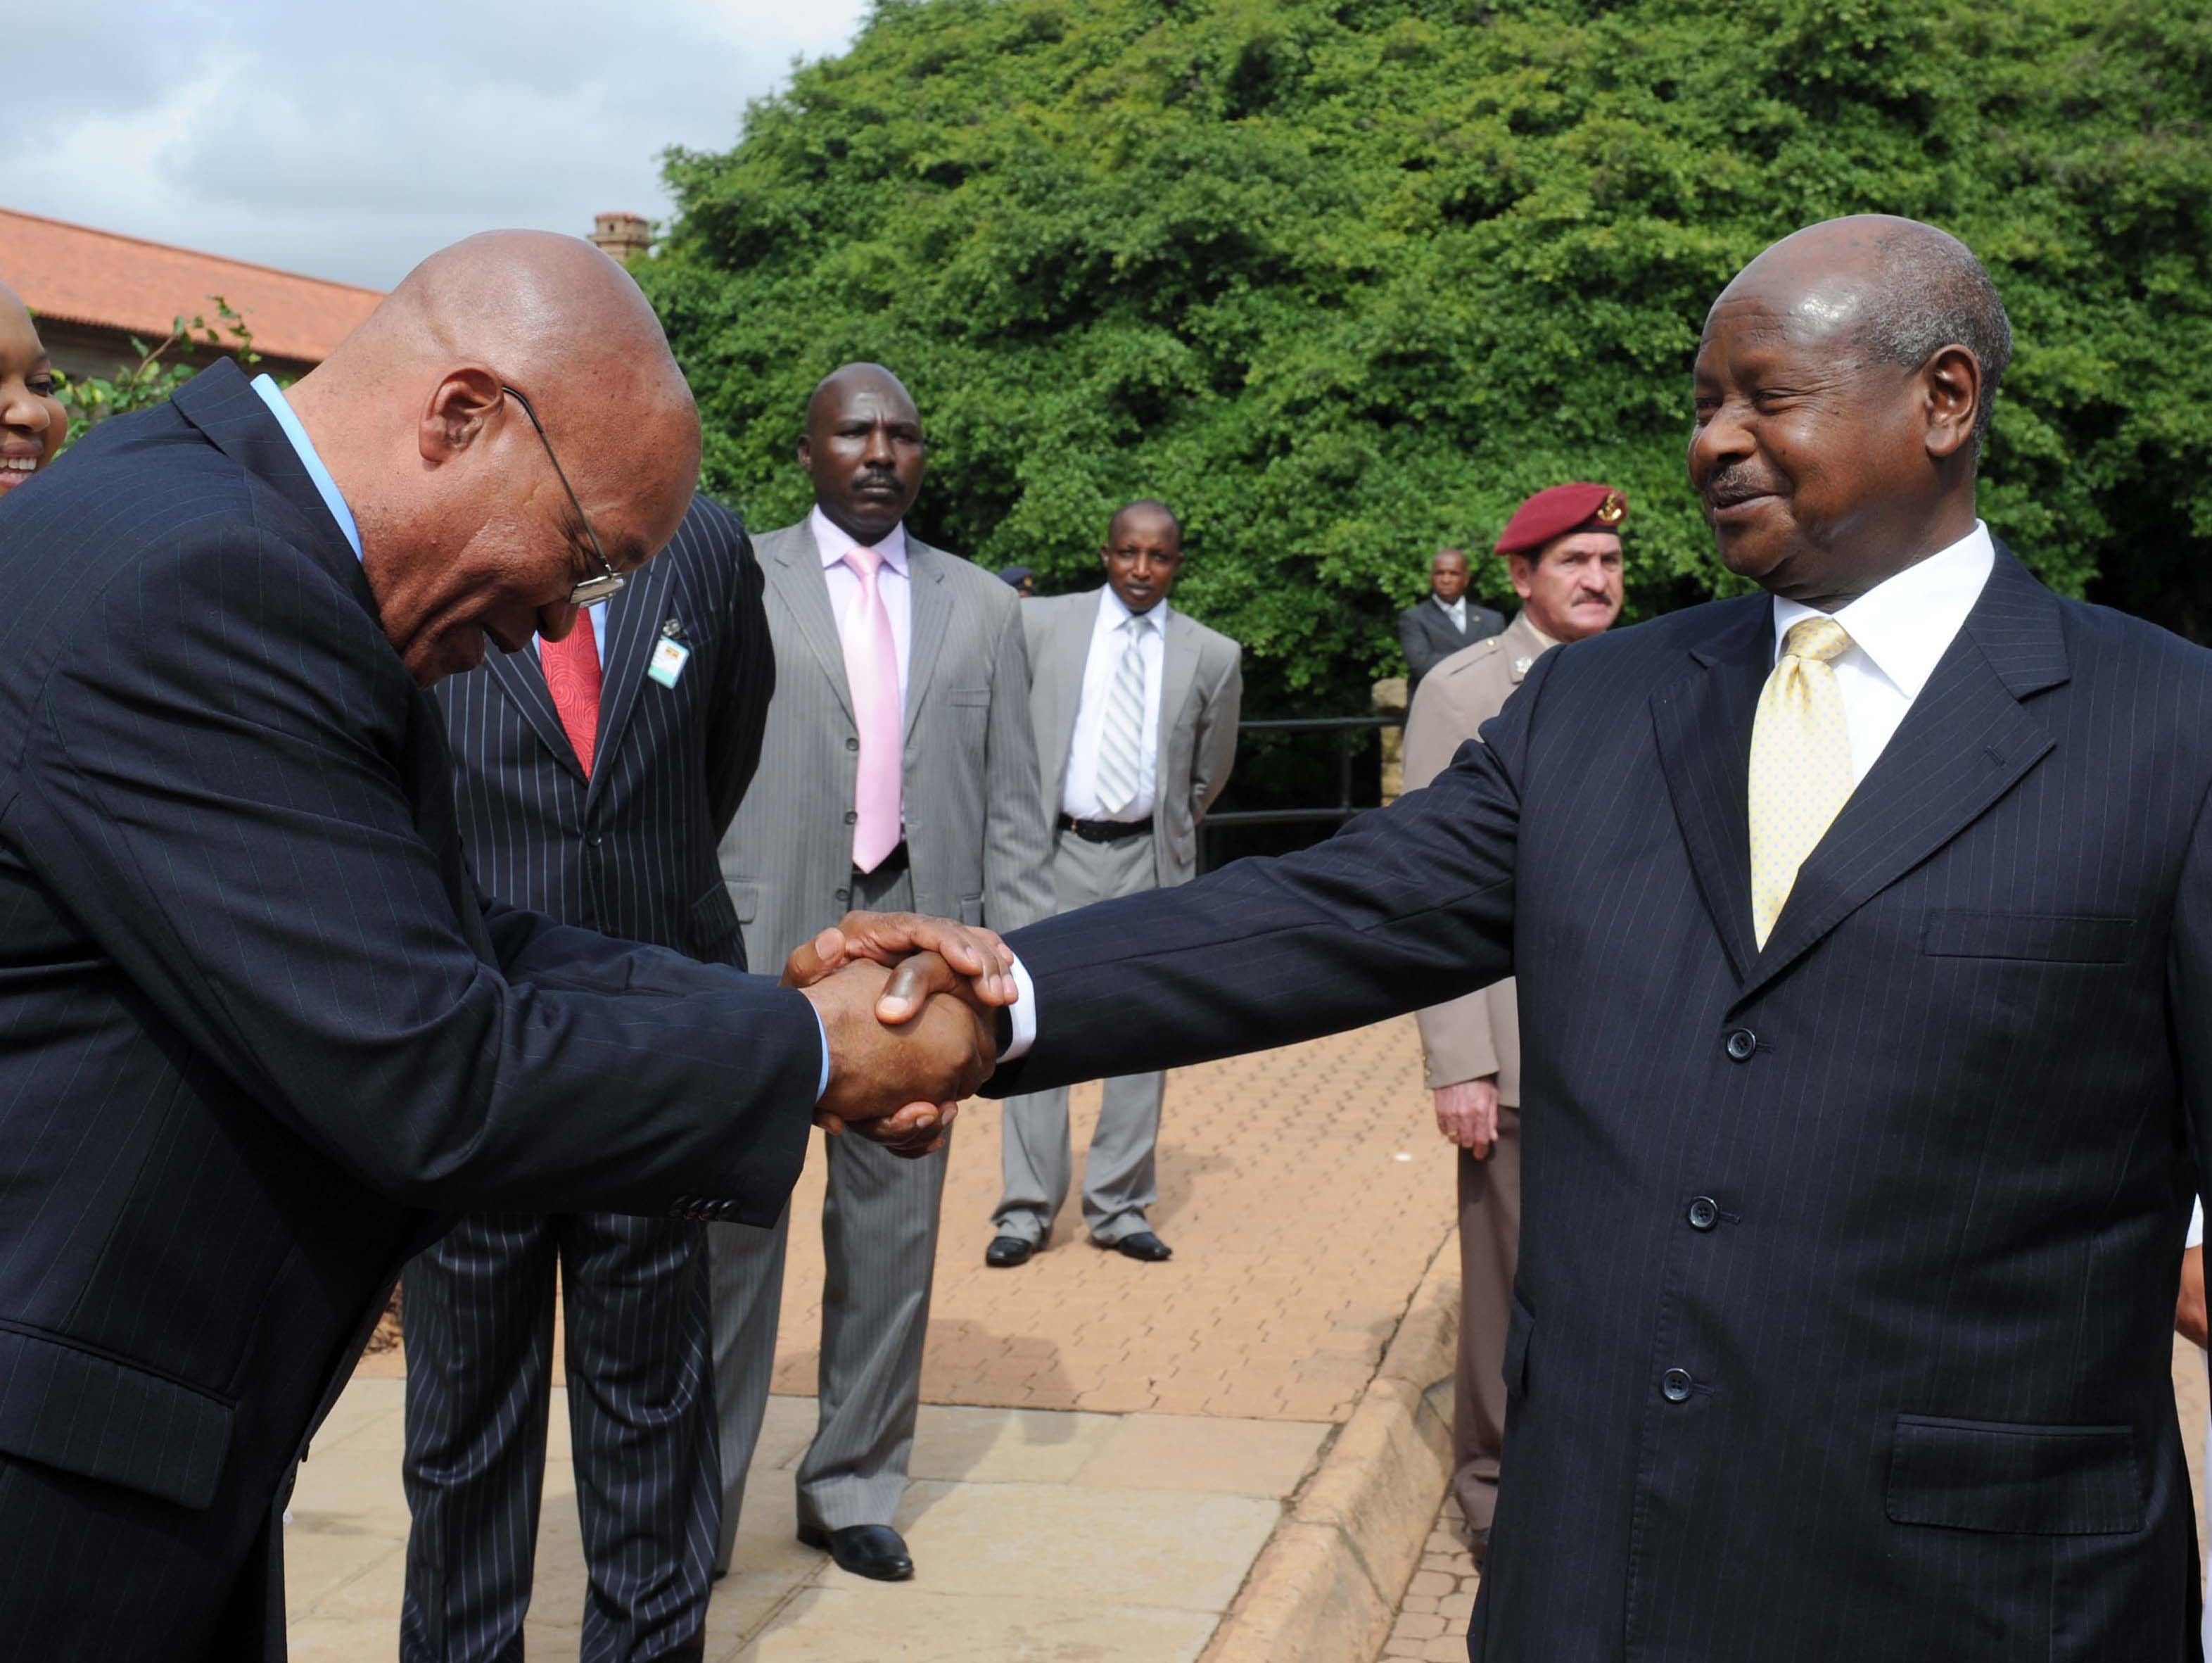 web_photo_Yoweri_Museveni_Jacob_Zuma_28112016